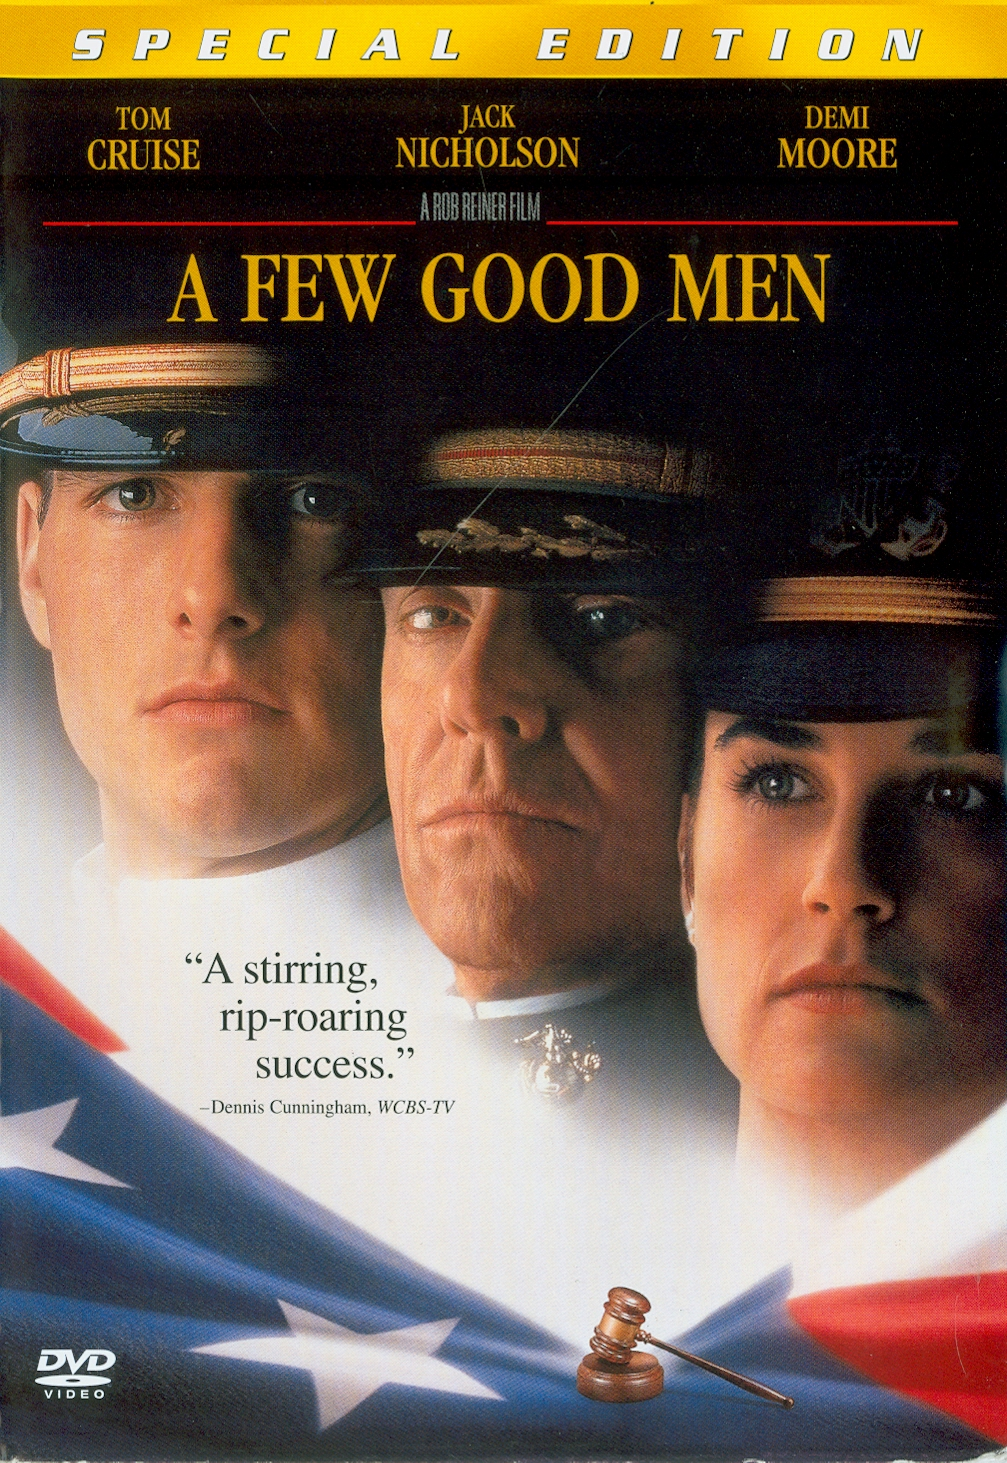 few good men[videorecording] /a Columbia Pictures and Castle Rock Entertainment presentation ; screenplay by Aaron Sorkin ; produced by David Brown, Rob Reiner, Andrew Scheinman ; directed by Rob Reiner||เทพบุตรเกียรติยศ